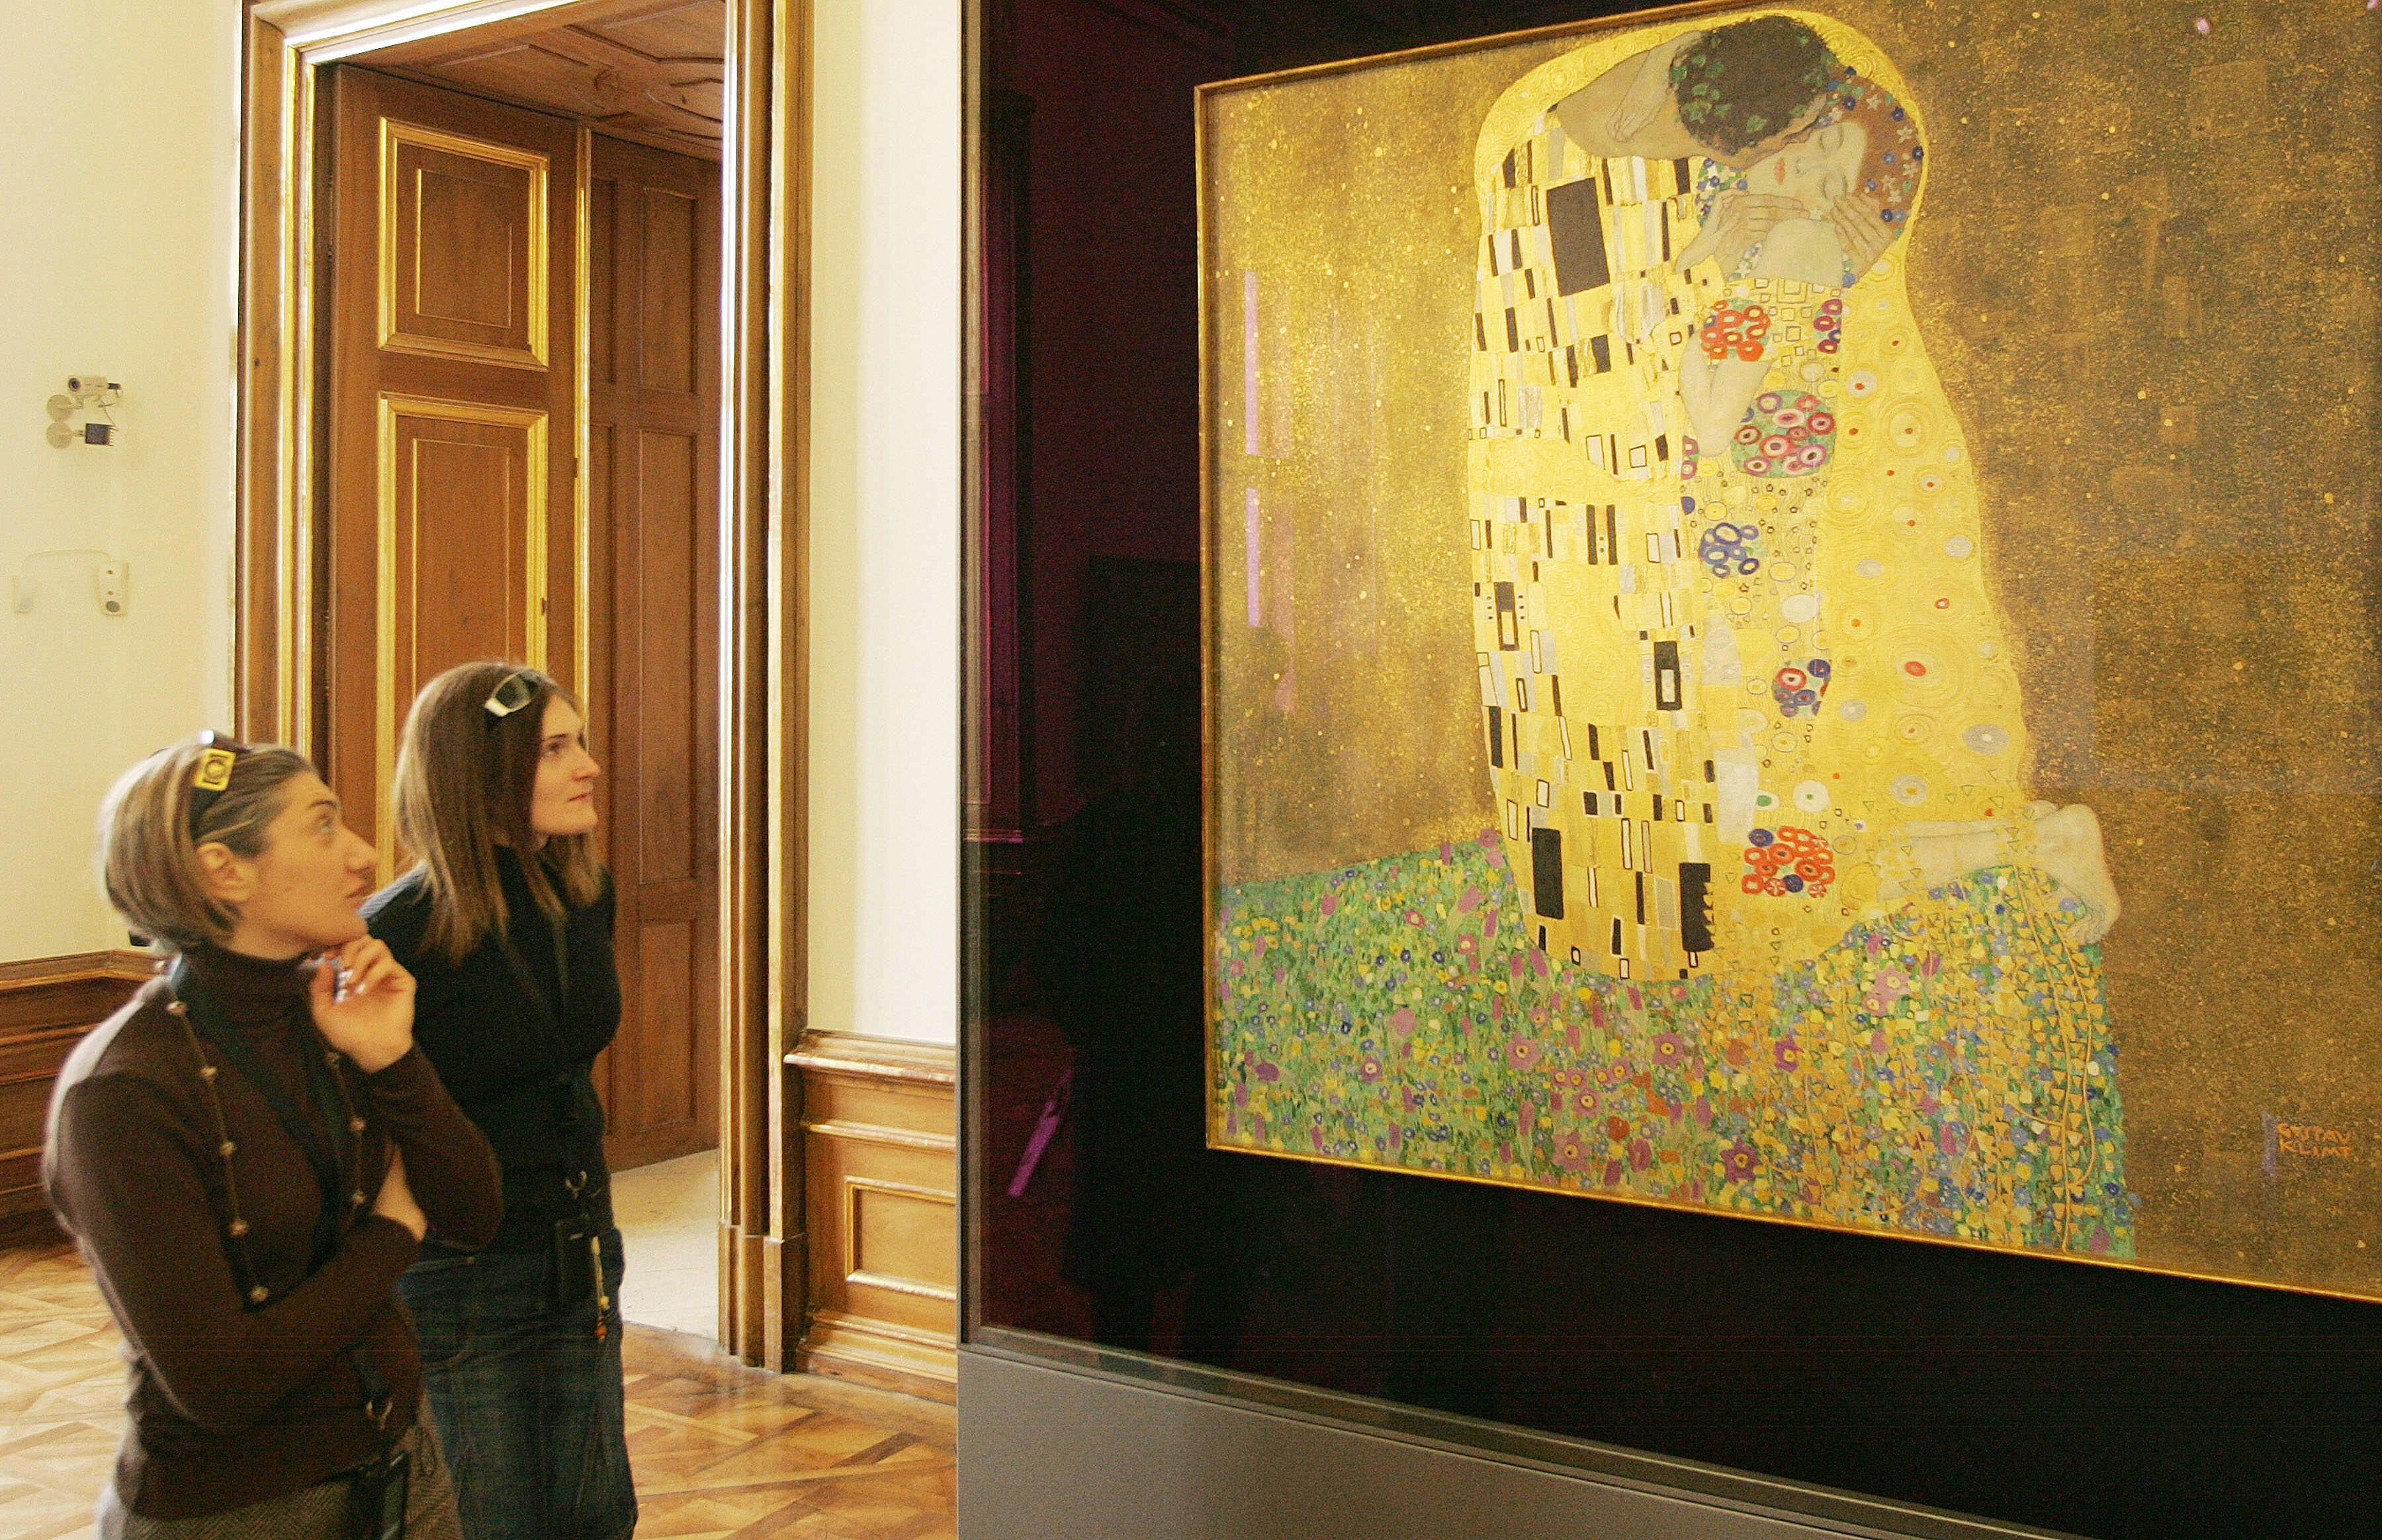 The Kiss The Painting Is Now In The Osterreichische Galerie Belvedere Museum In The Belvedere Palace Vienna And Is Widely Considered A Masterpiece Of The Ear